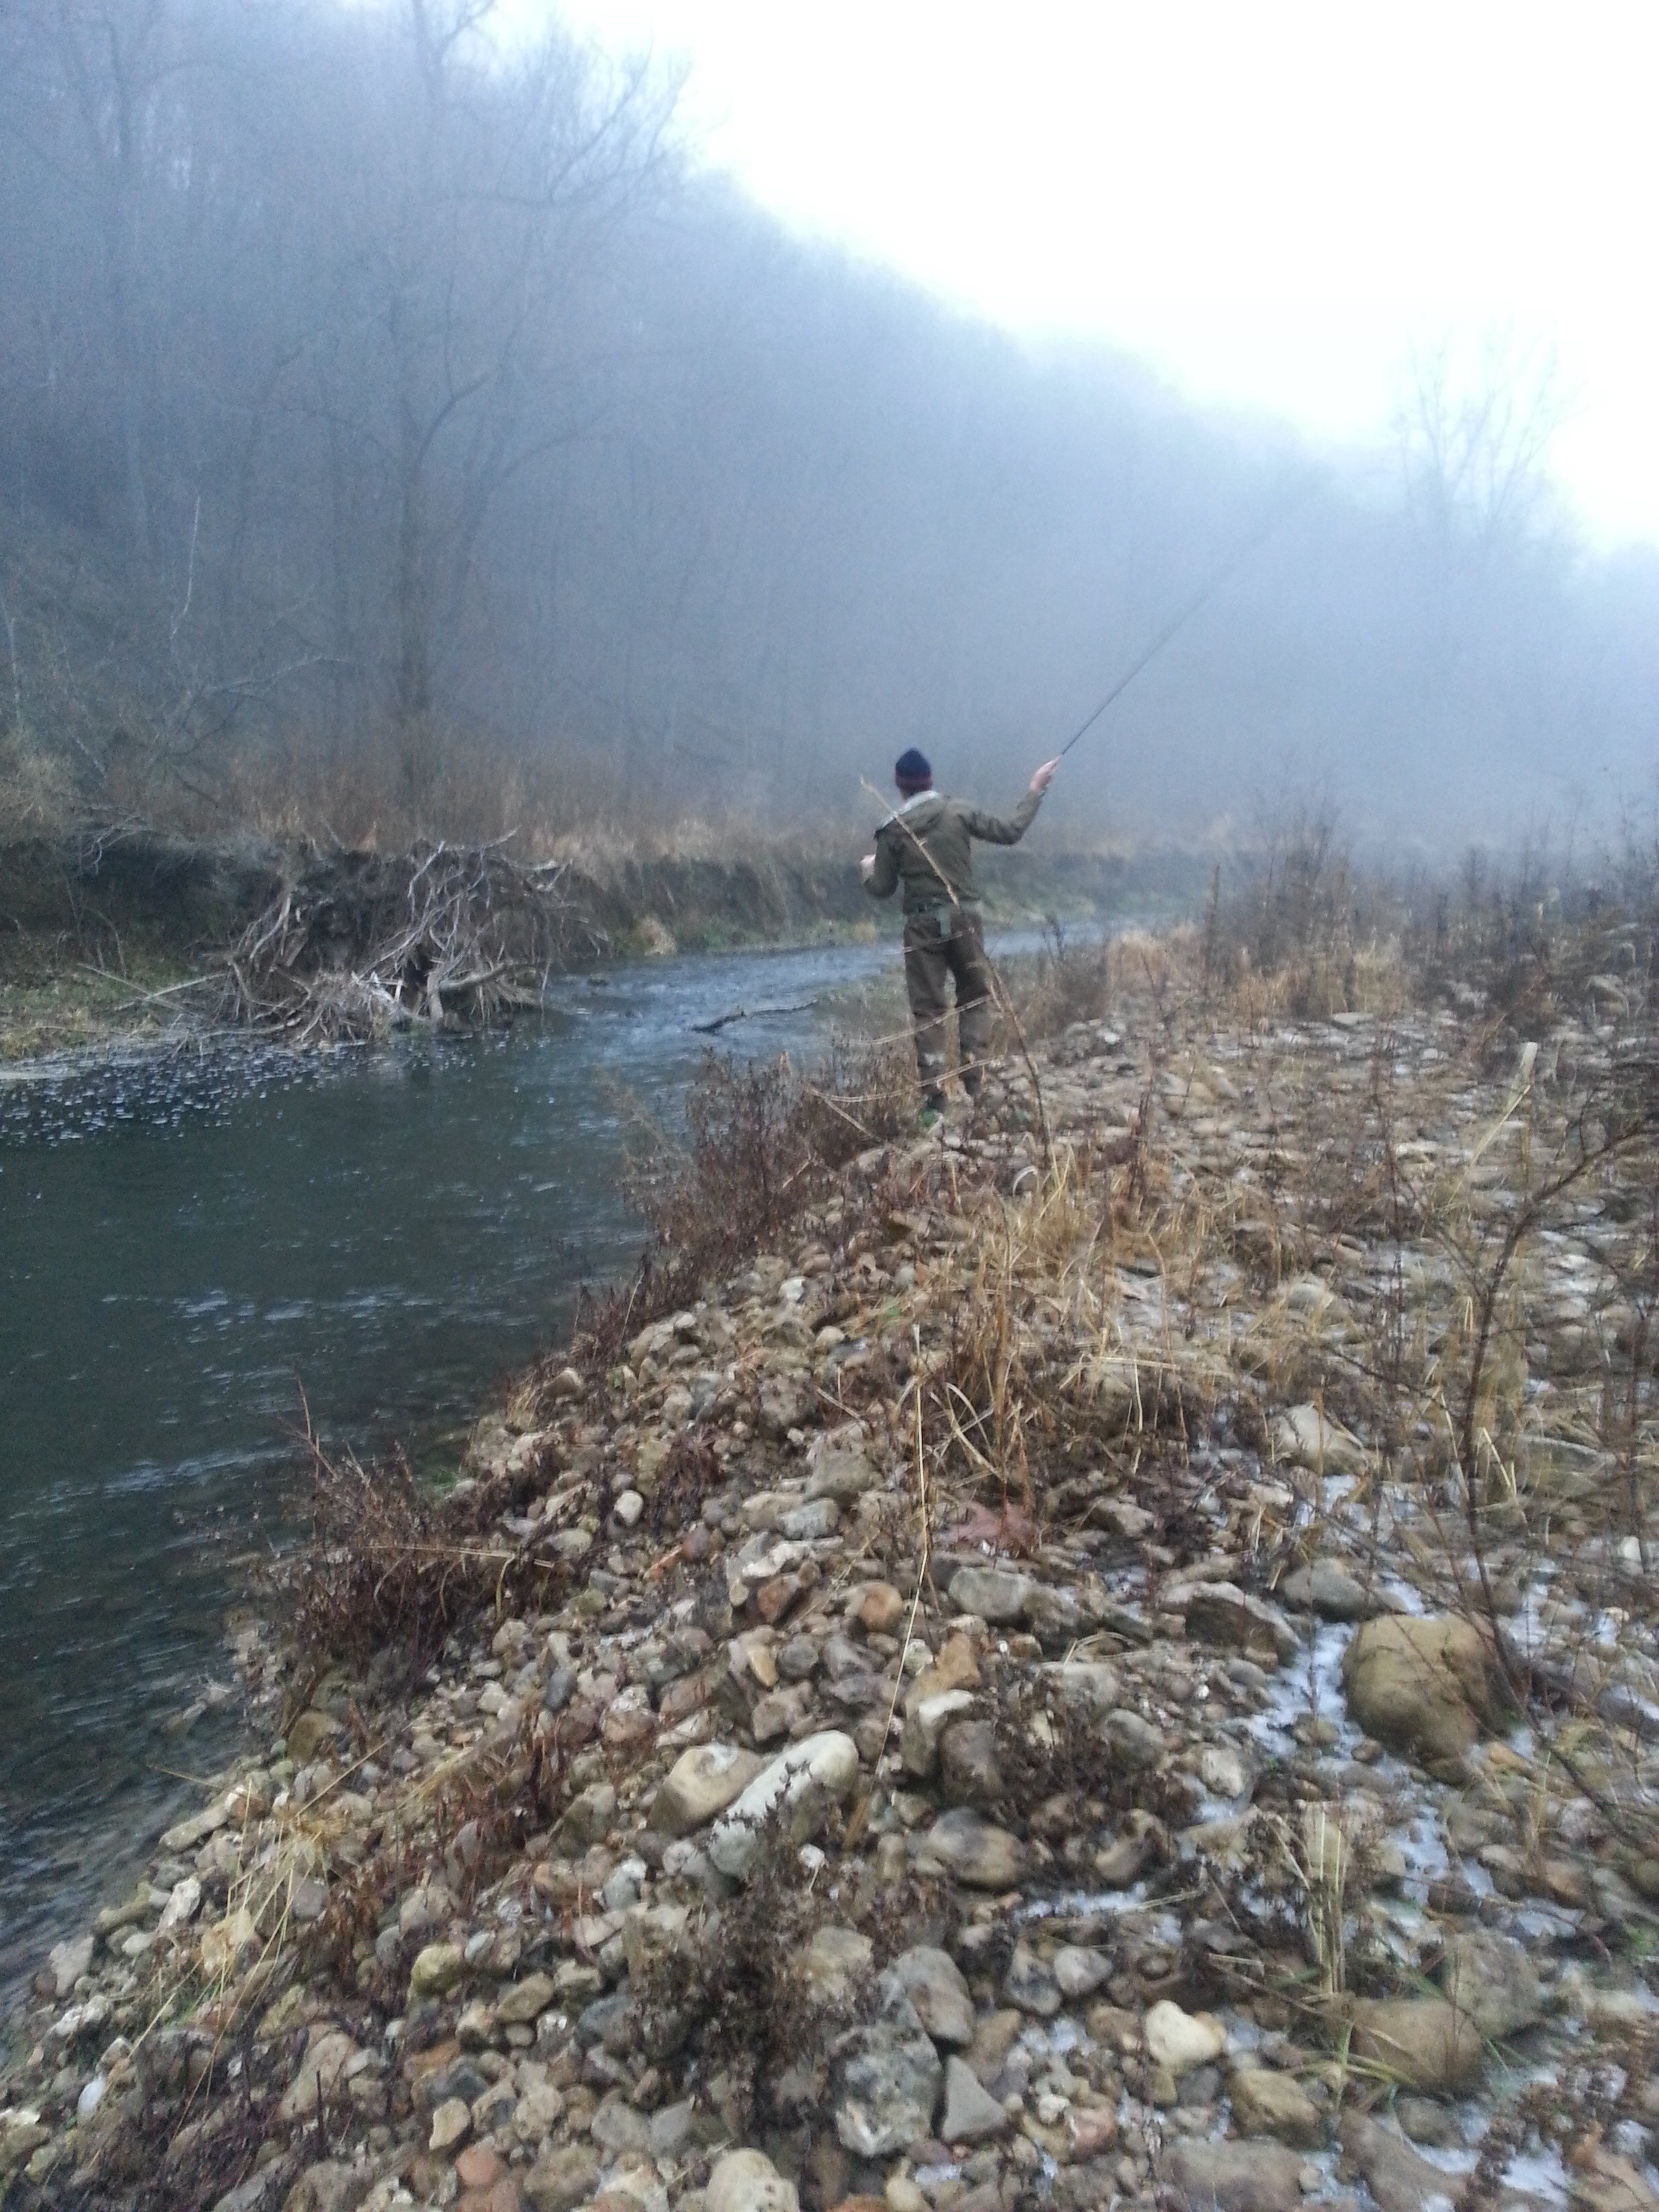 Winter fishing in ne iowa trout unlimited north bear chapter for Fishing in iowa